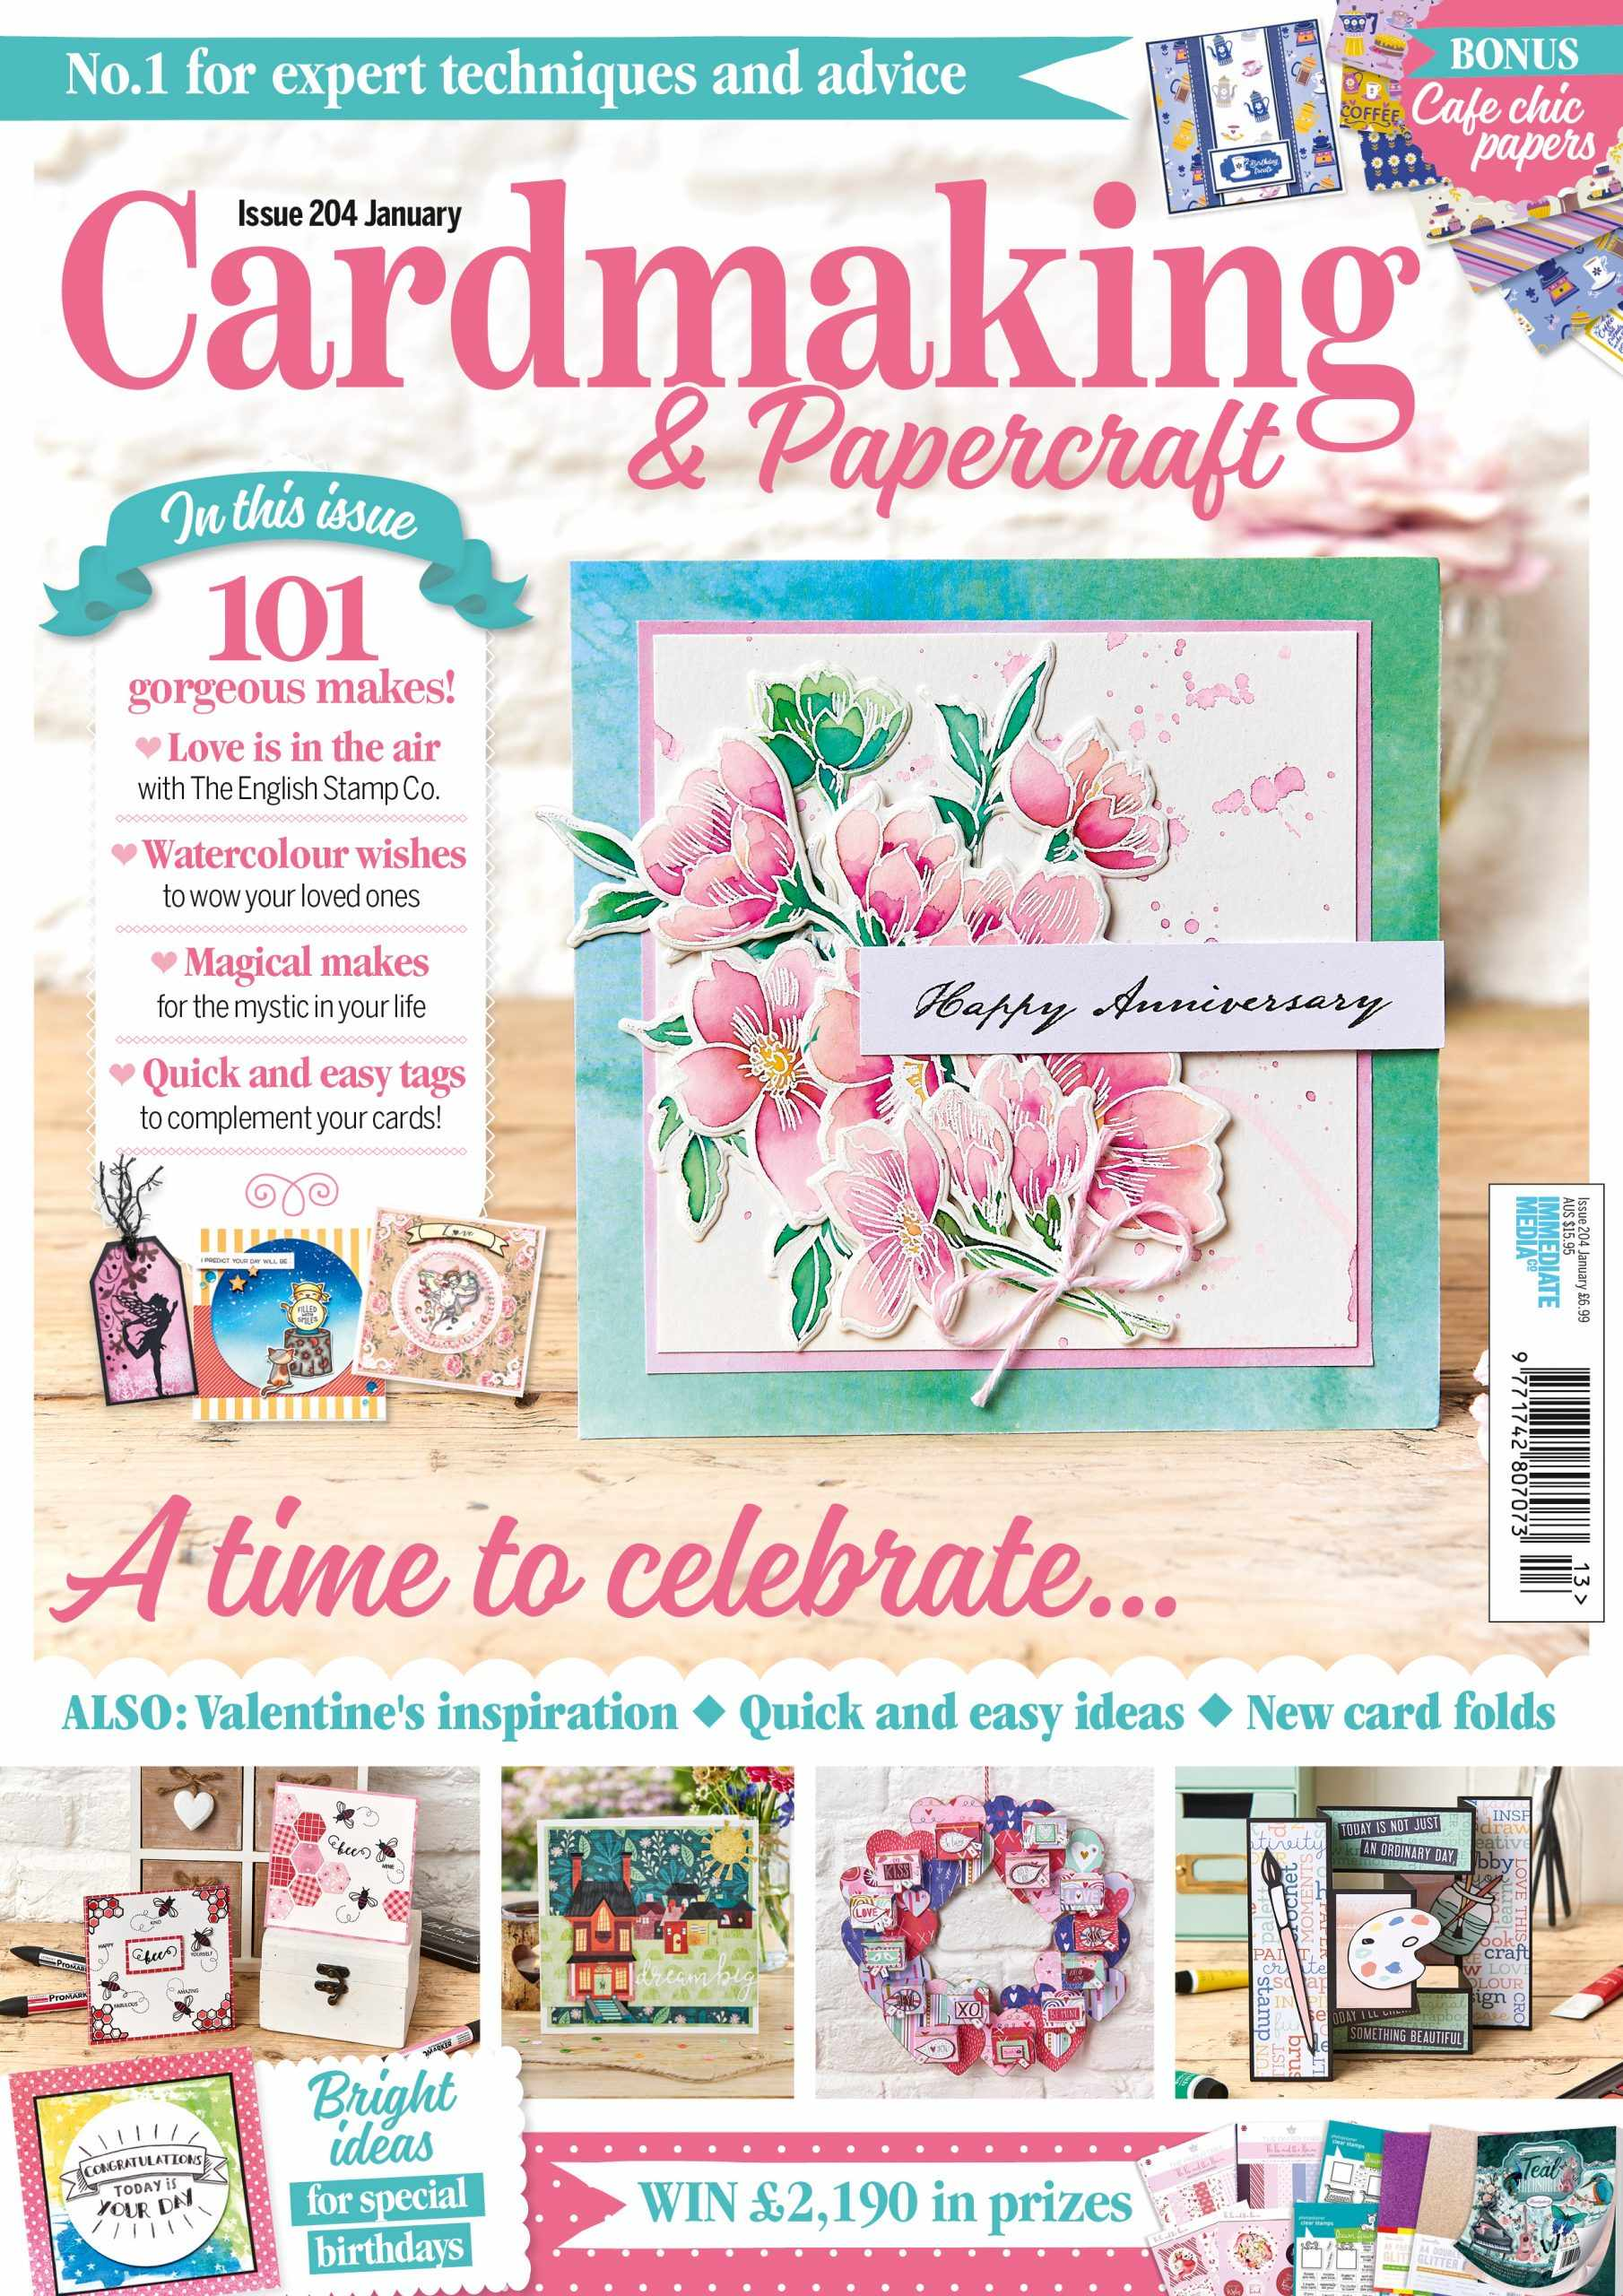 Cardmaking & Papercraft issue 204 cover